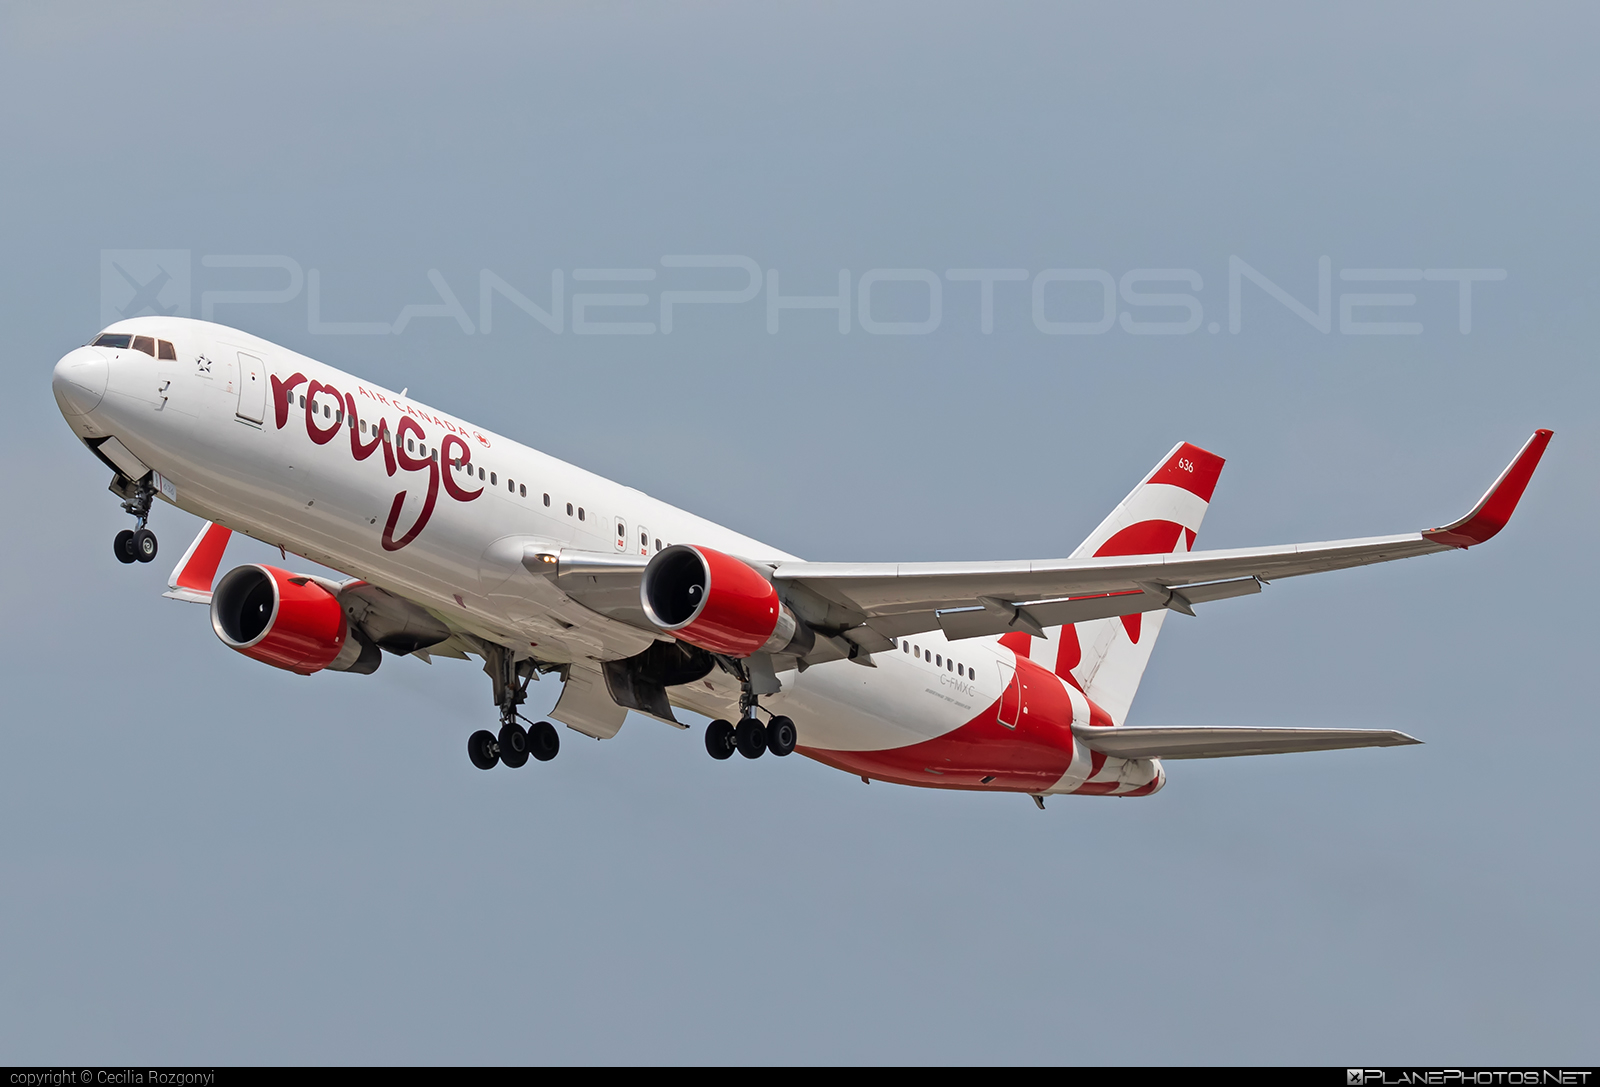 Air Canada Rouge Boeing 767-300ER - C-FMXC #aircanadarouge #b767 #b767er #boeing #boeing767